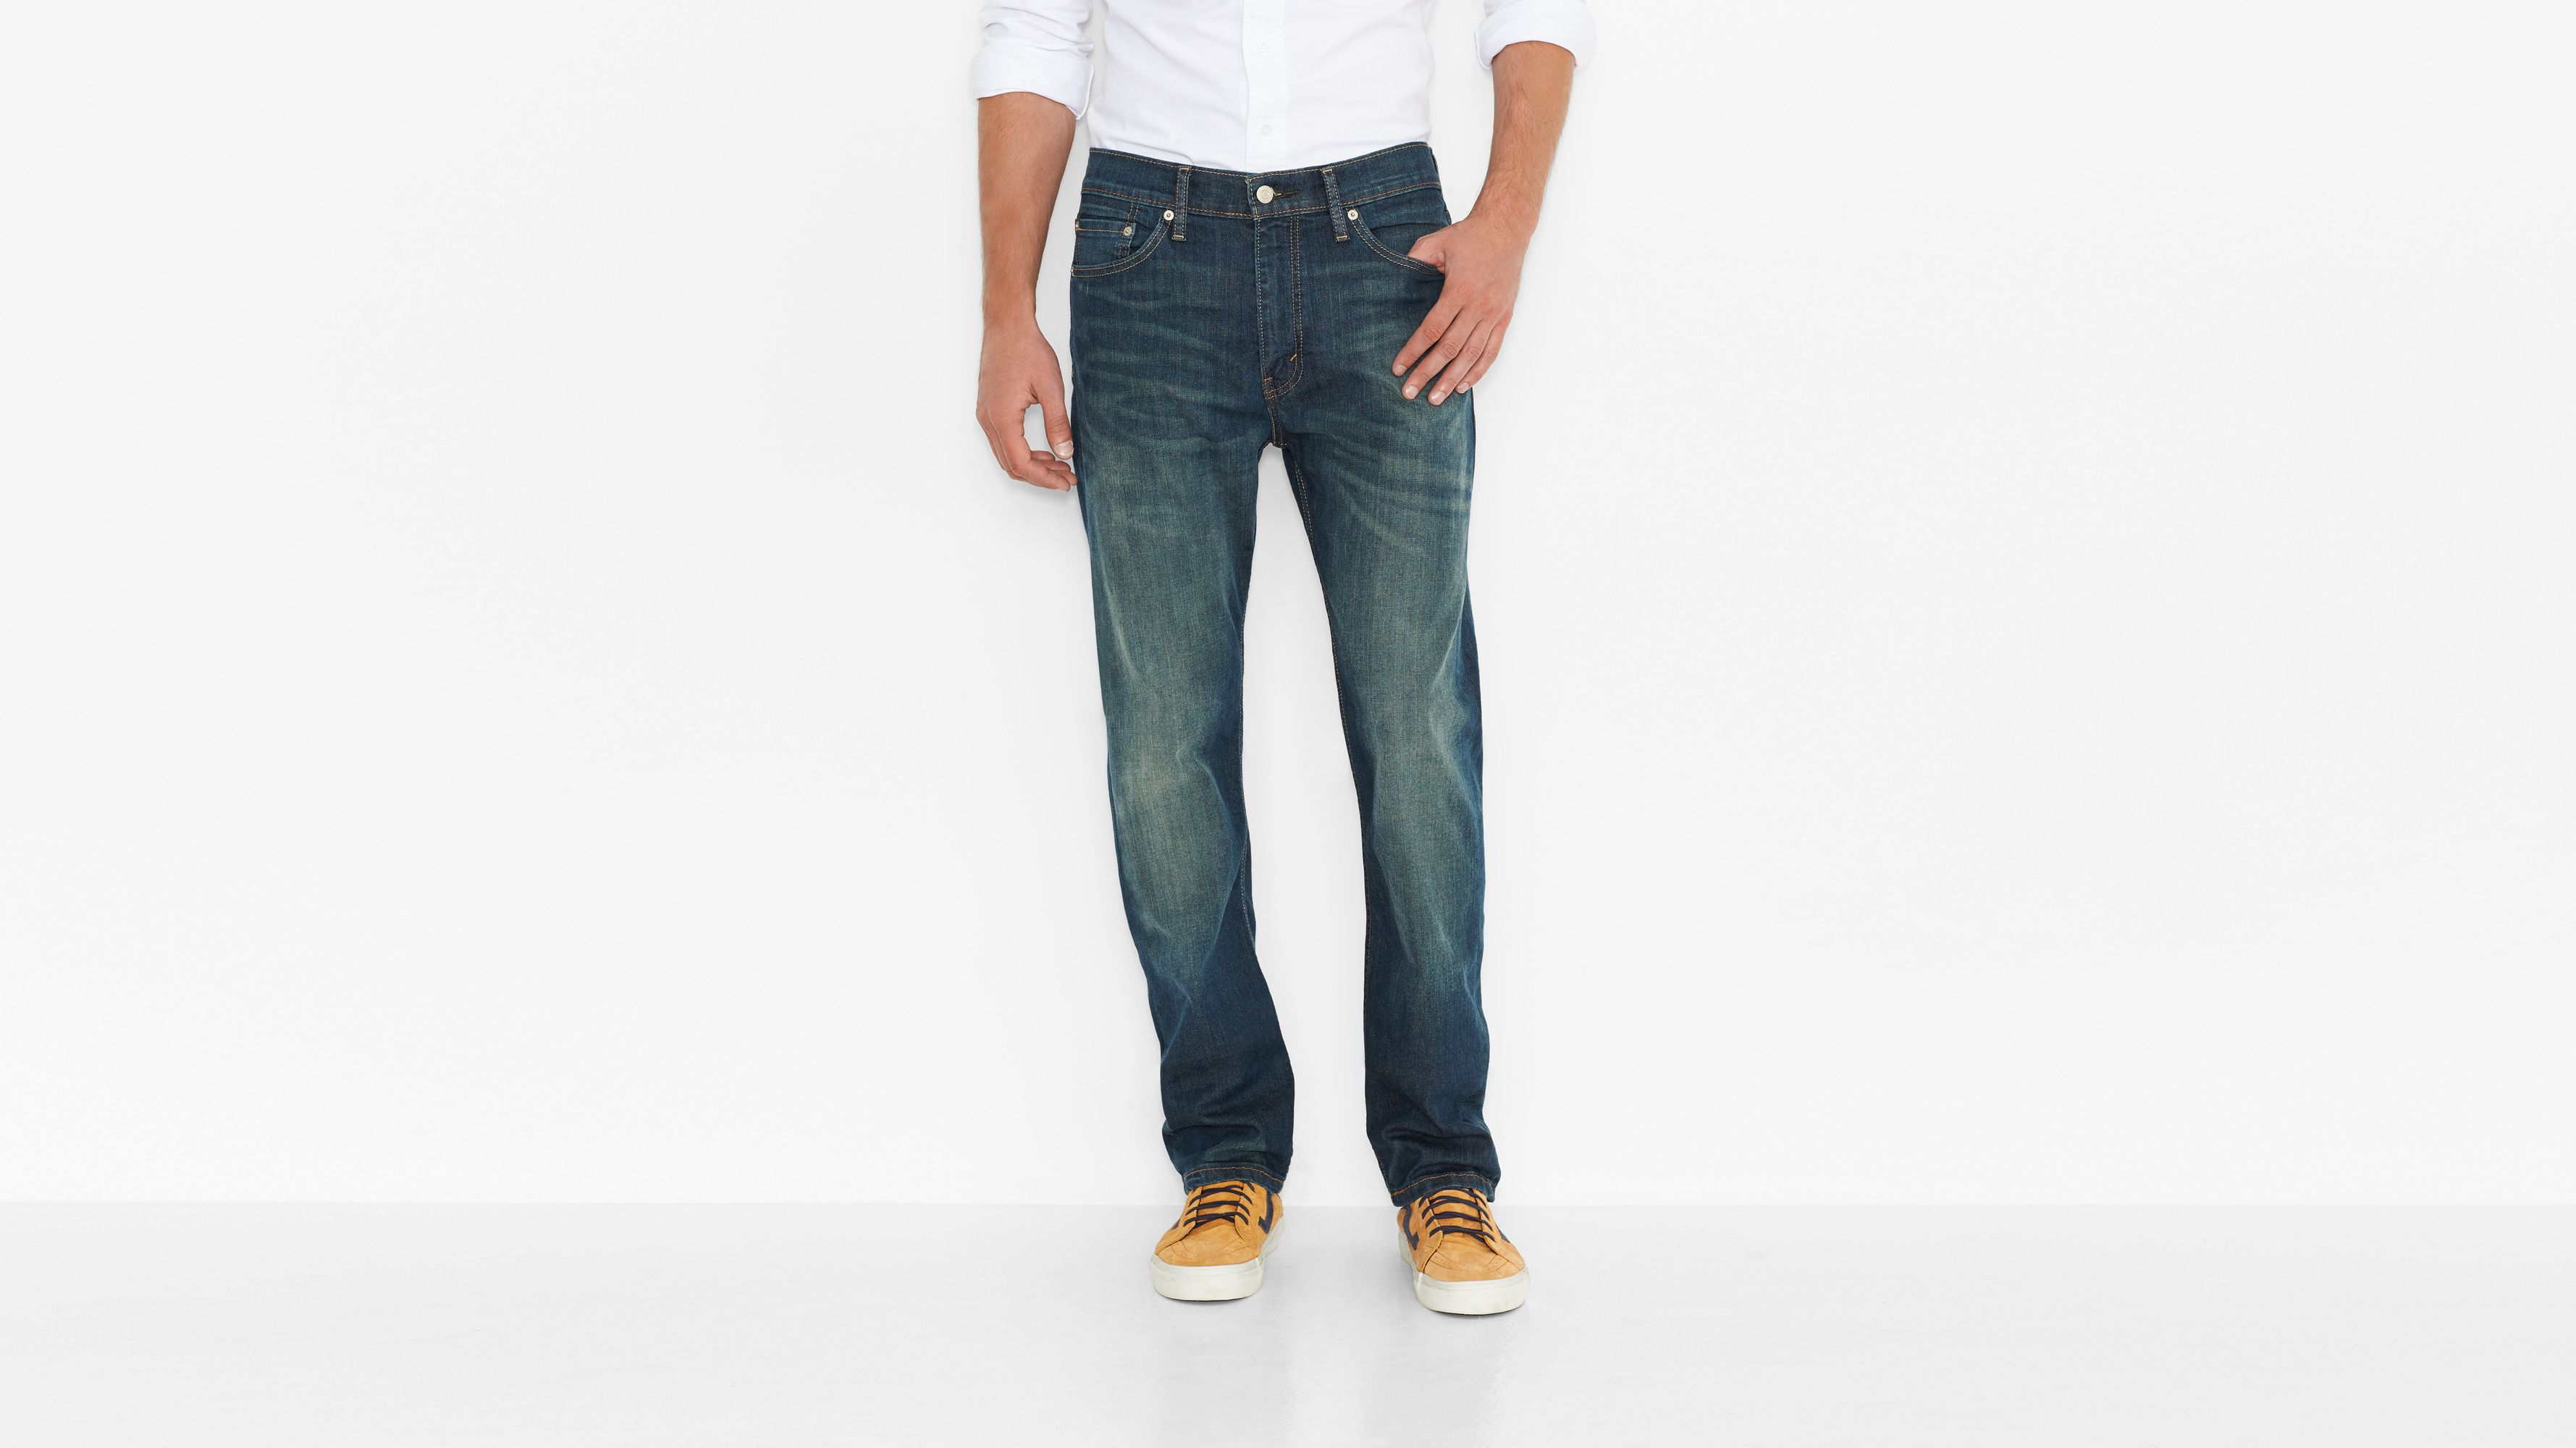 513™ Slim Straight Jeans - Cash